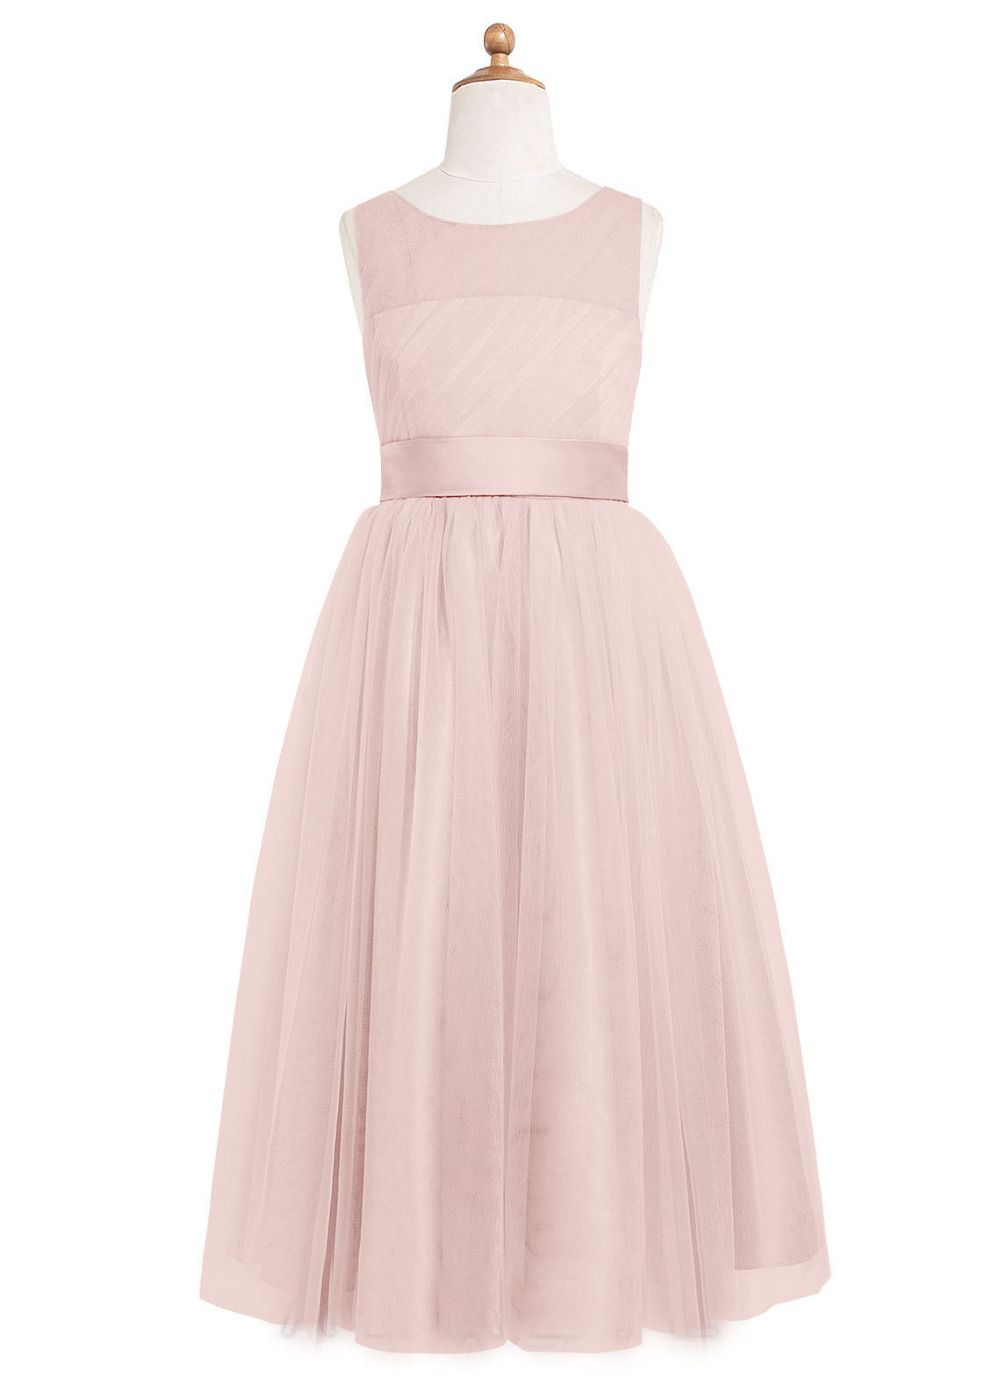 Click to buy 2016 real picture tea length junior bridesmaid click to buy 2016 real picture tea length junior bridesmaid dresses party ombrellifo Choice Image